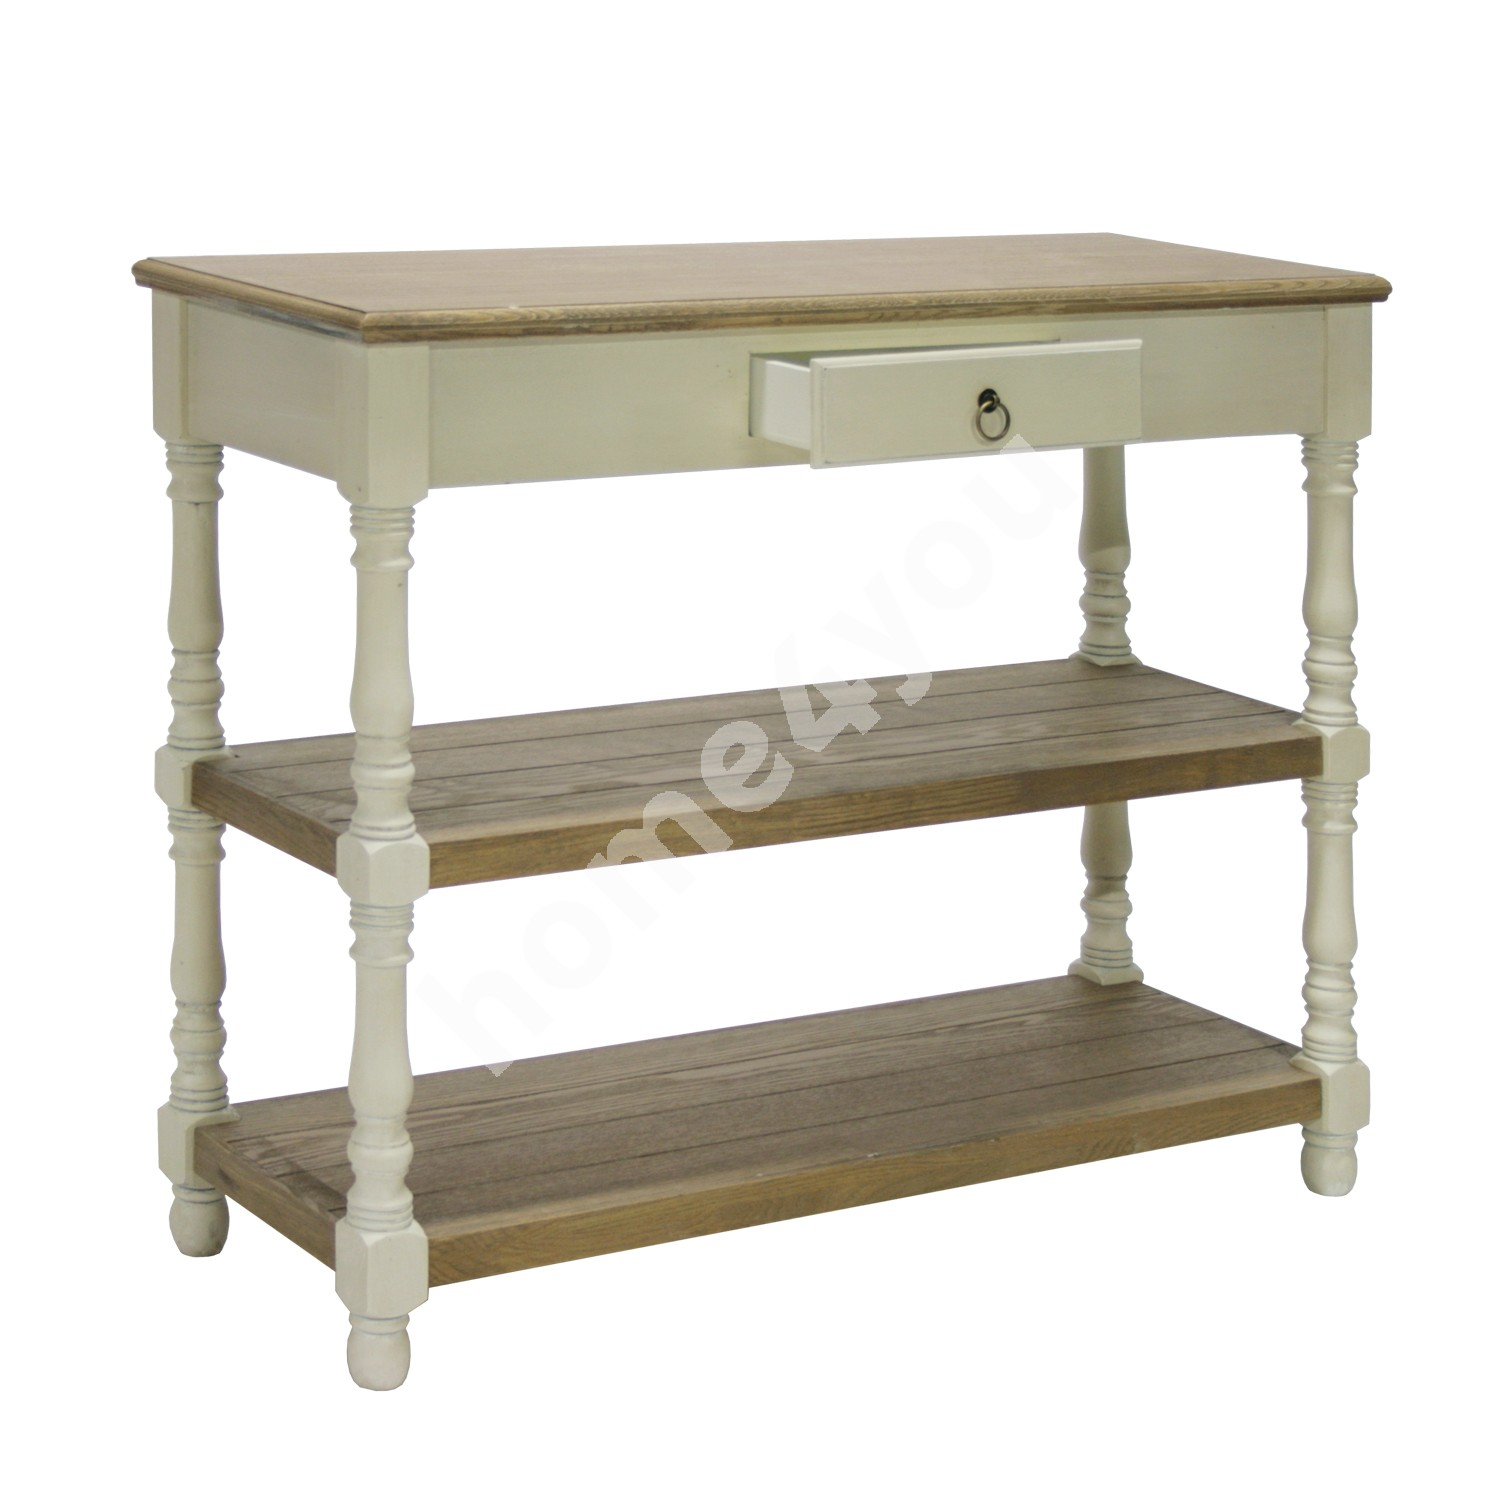 Side table SAMIRA 97x35xH80,5cm, table top: MDF, frame and legs: ash, color: antique white / brown